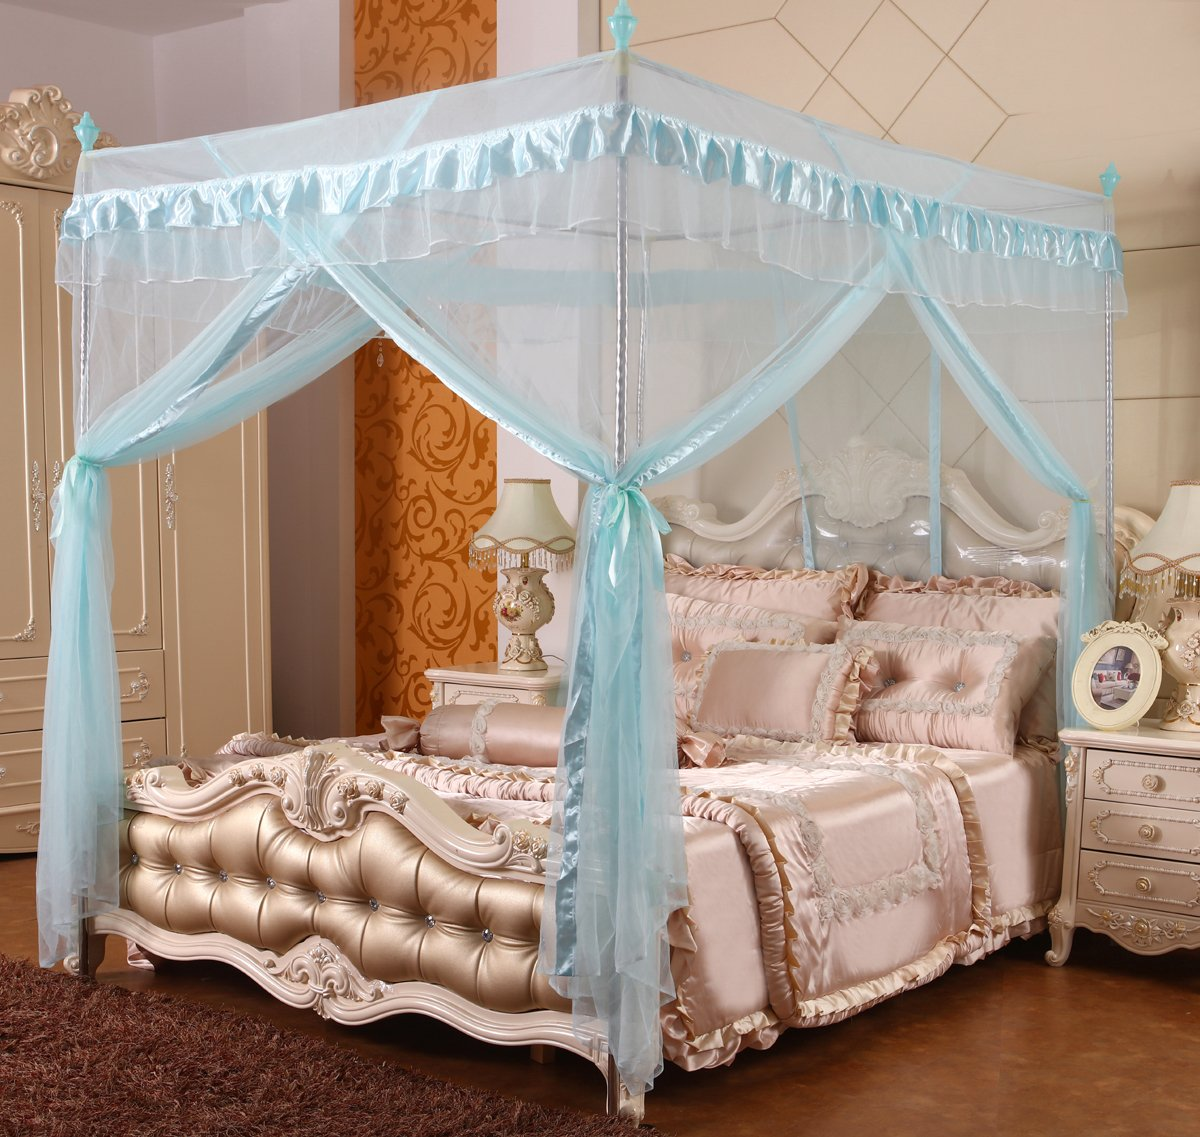 Mengersi 4 Corners Post Bed Canopy Curtains Mosquito Net for Girls Boys Bed